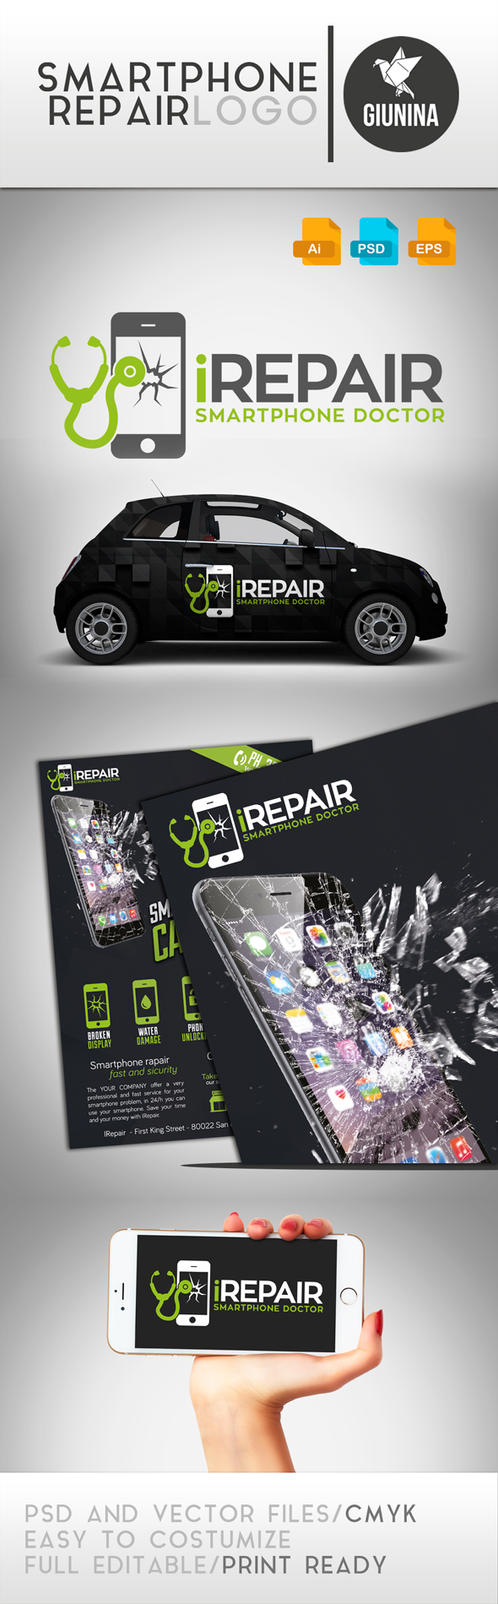 Smartphone Repair Logo Template by Giunina